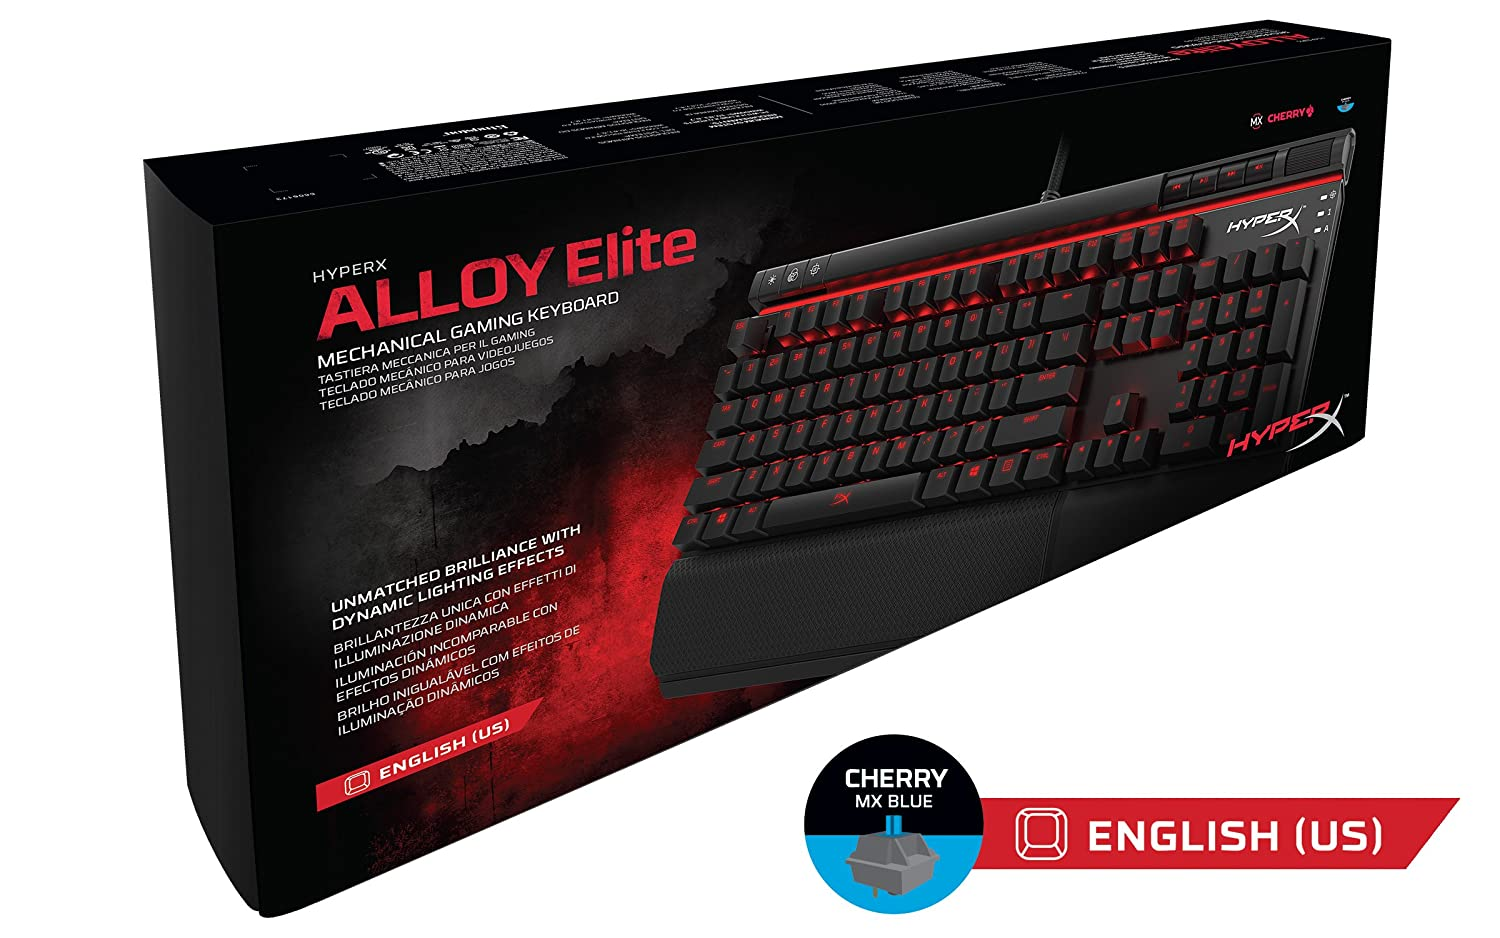 Amazon.com: HyperX Alloy Elite Mechanical Gaming Keyboard, Cherry MX Blue, Red LED and HyperX Fury S Pro Gaming Mouse Pad Medium: Computers & Accessories